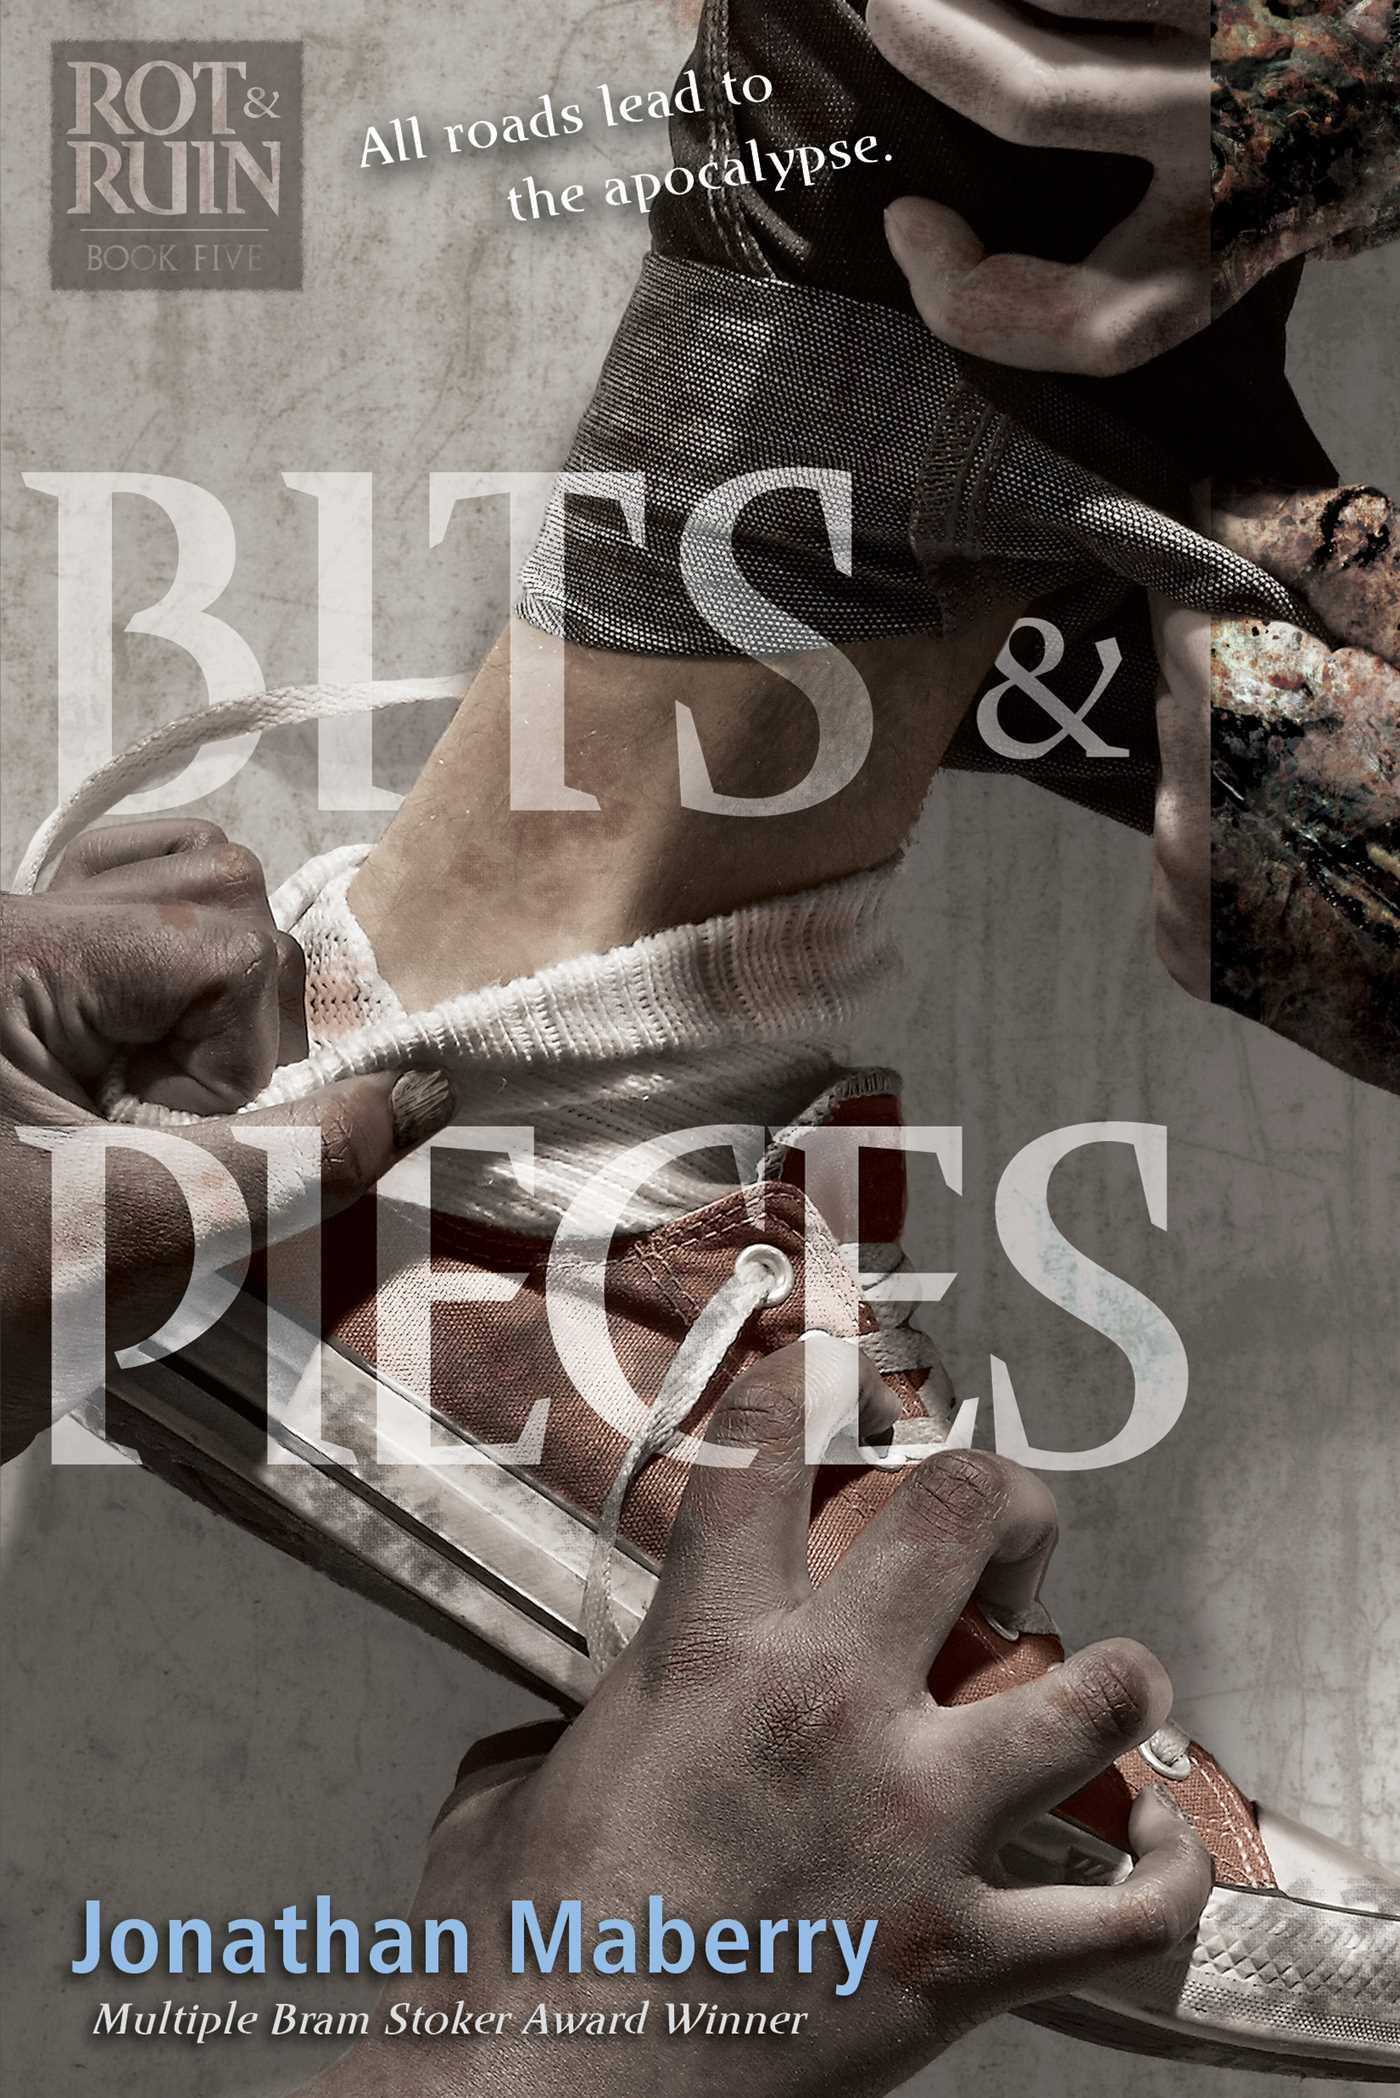 Bits & Pieces eBook by Jonathan Maberry   Official ...